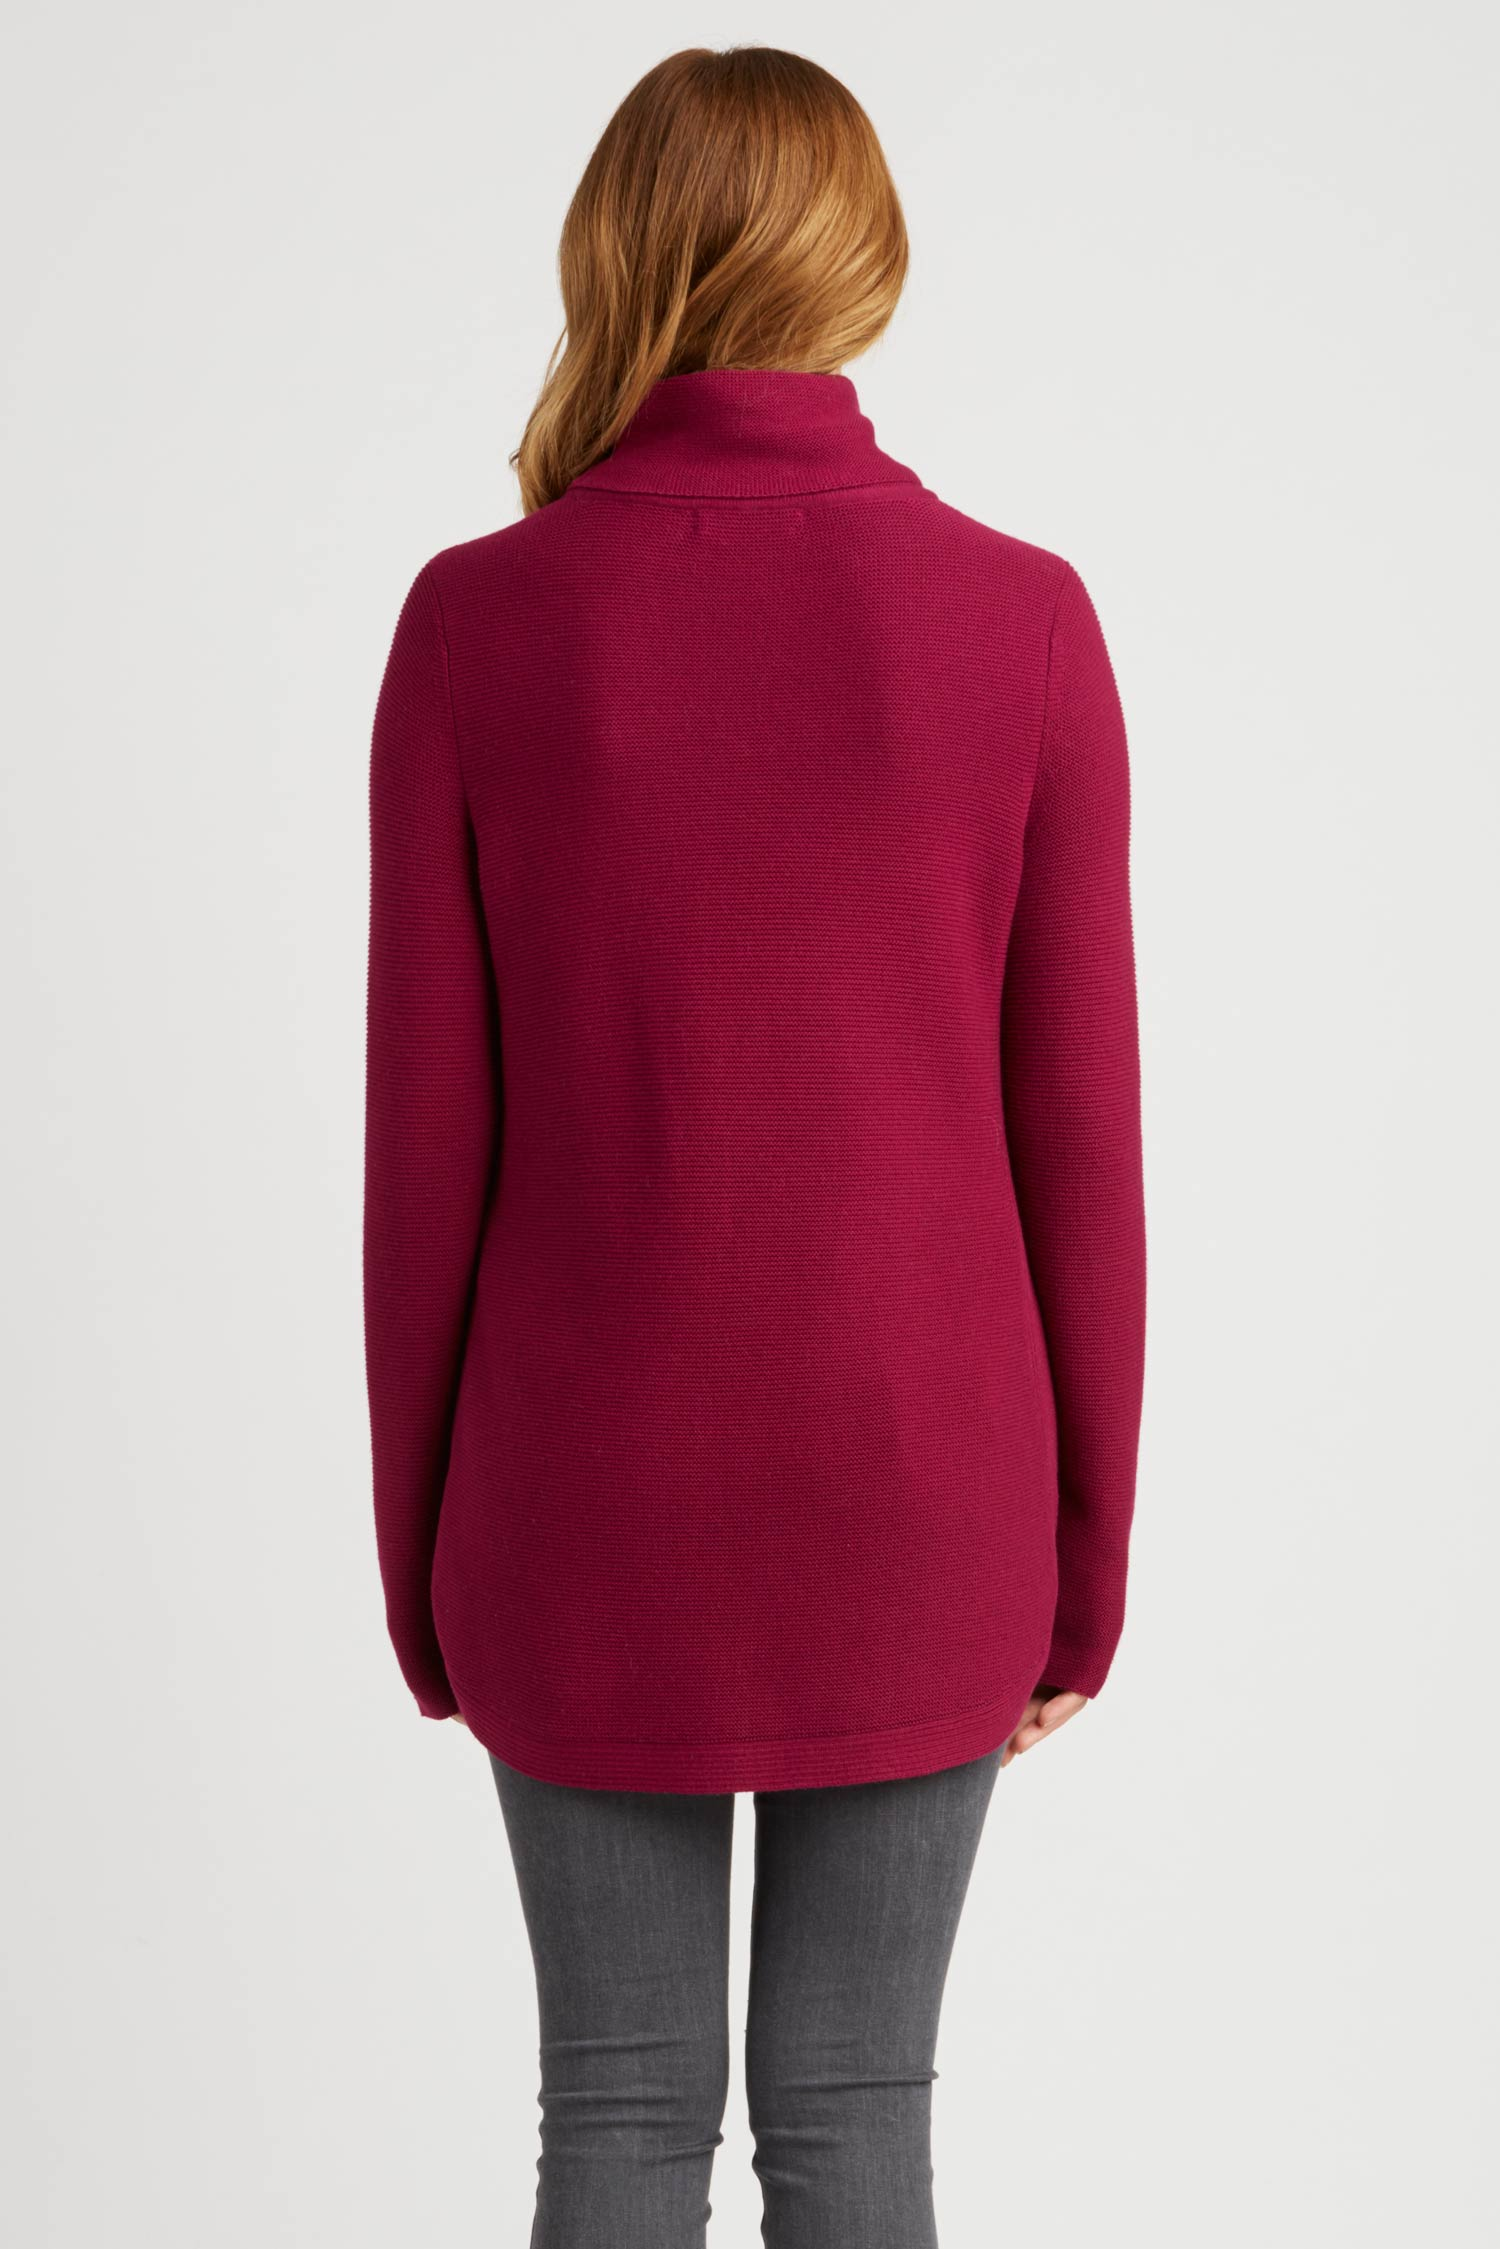 Womens Funnel Neck Sweater | Organic Cotton Clothing | Winterberry